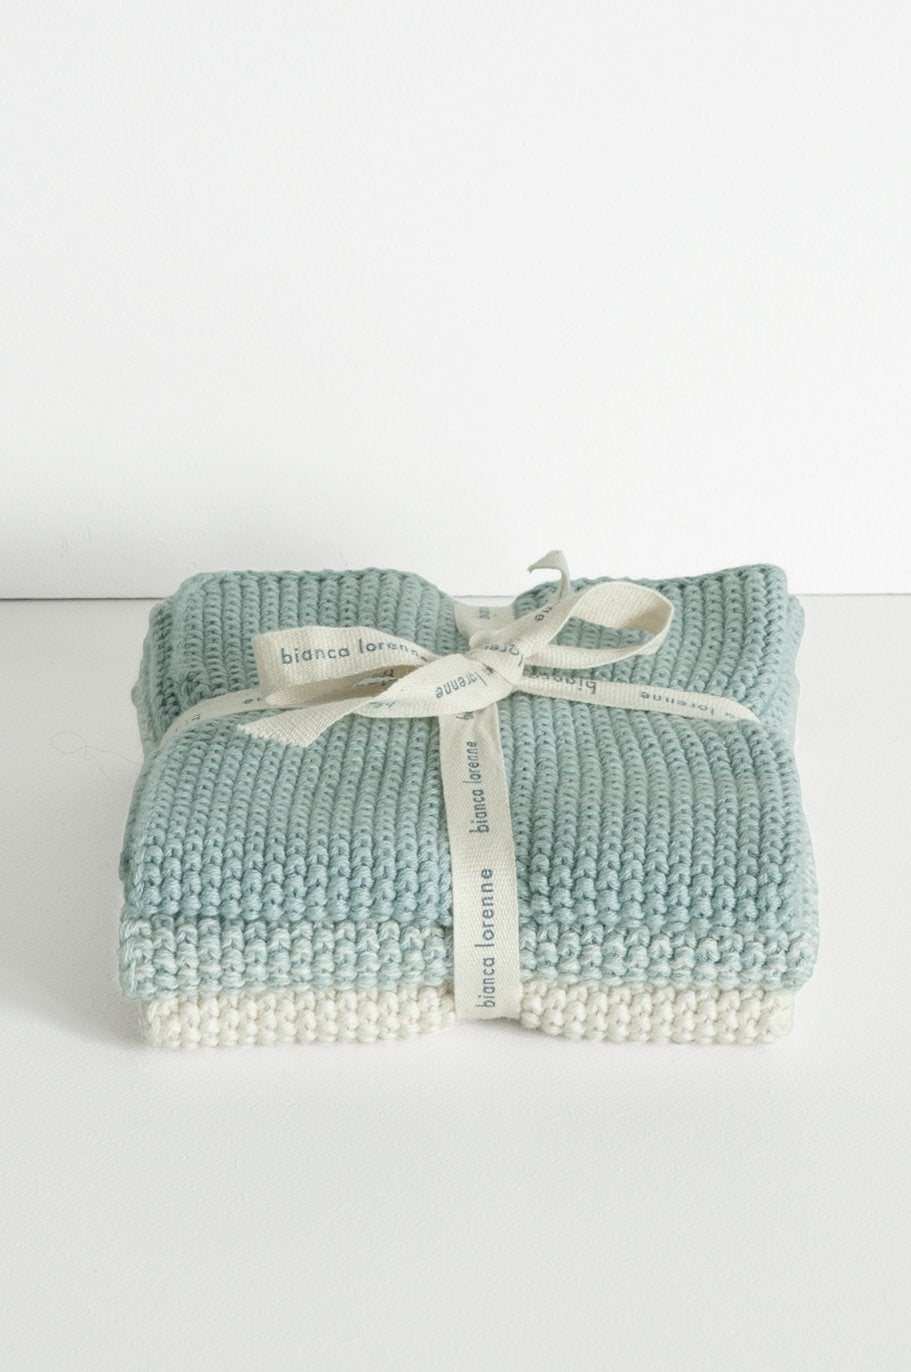 Lavette Duck Egg Wash Cloths -Set of three